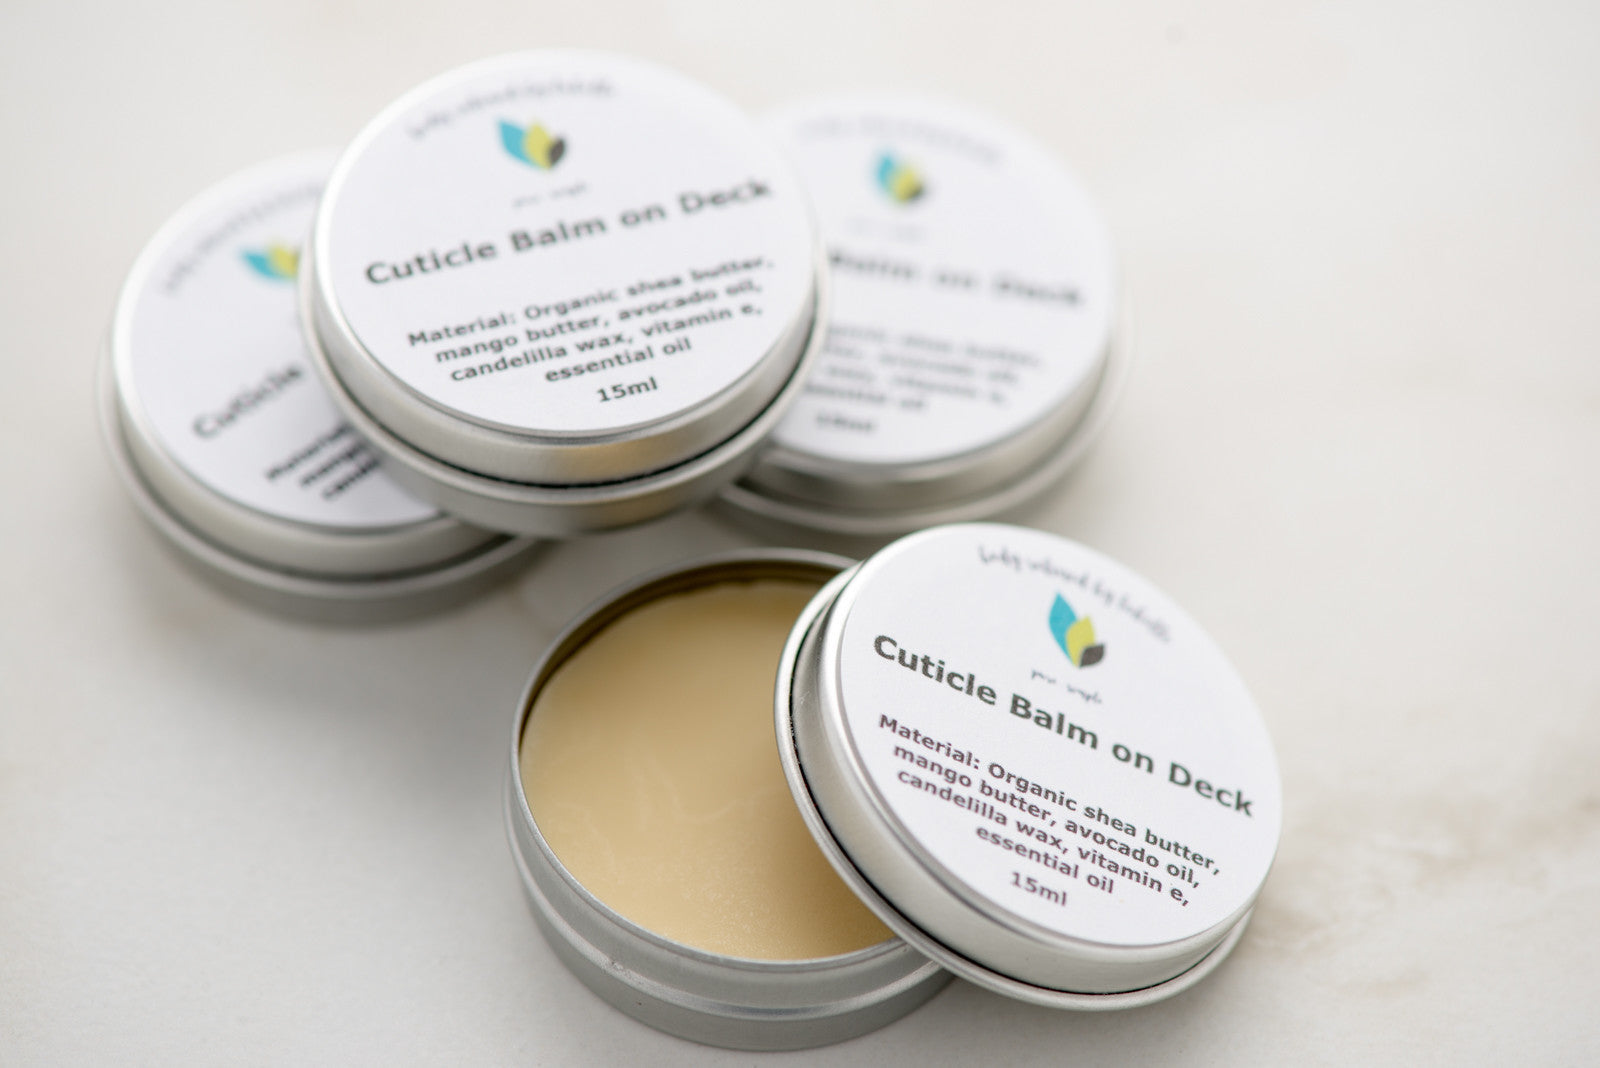 Lime Cuticle Balm on Deck | Vegan